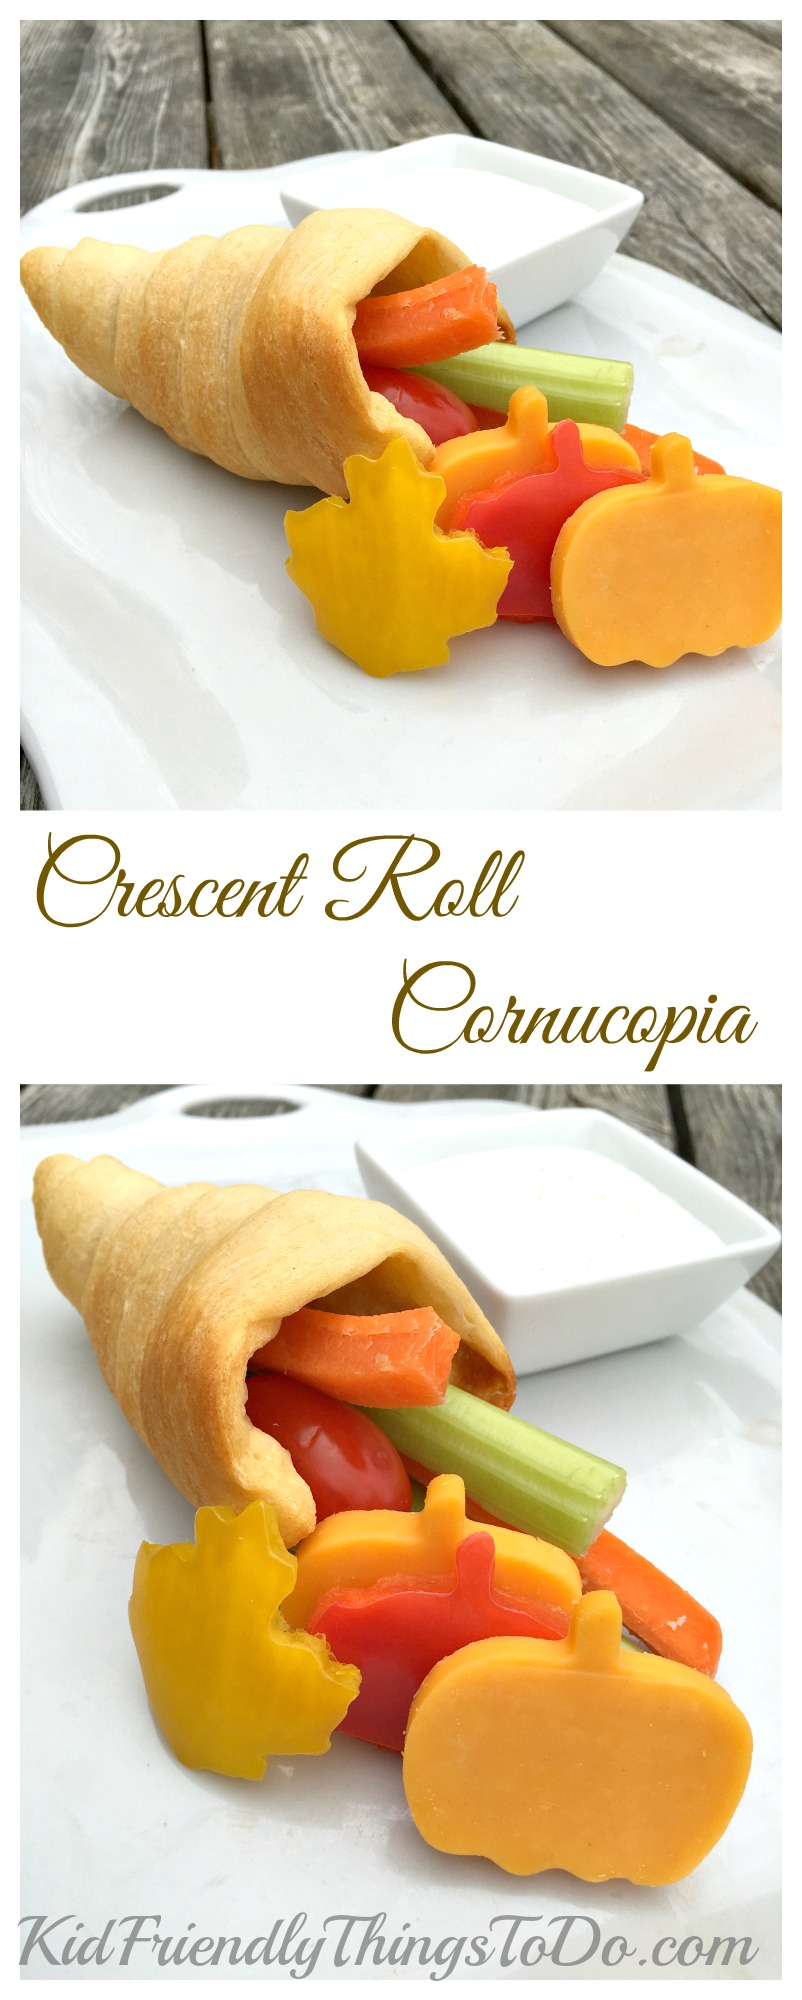 Crescent Roll Cornucopia filled with Vegetables and served with ranch dip! Yum and Fun! - KidFriendlyThingsToDo.com